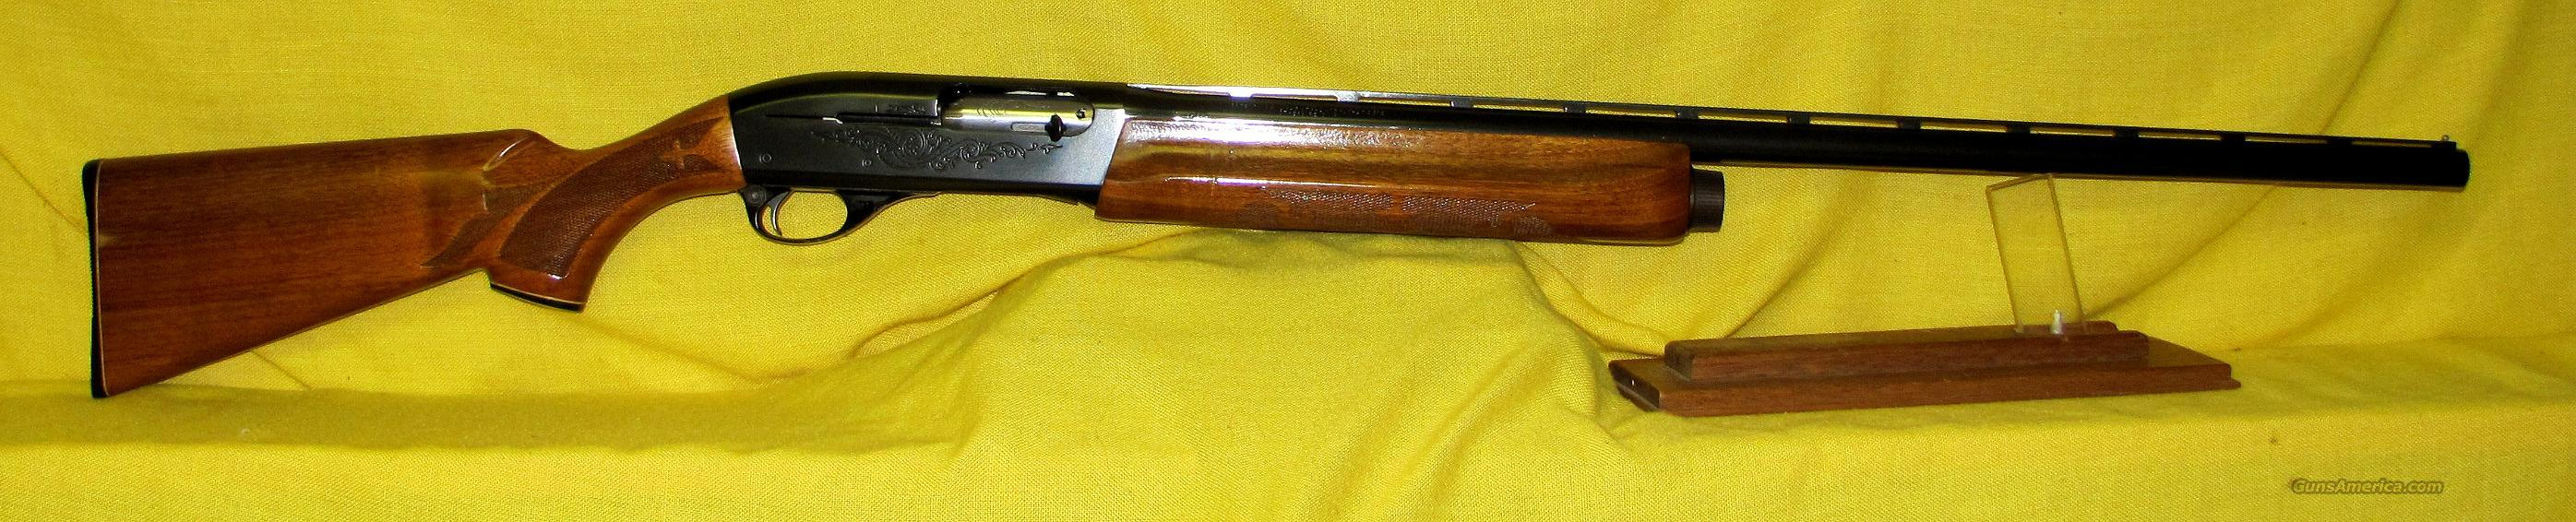 "REMINGTON 1100 12GA 28"" VENT RIB BBL  Guns > Shotguns > Remington Shotguns  > Autoloaders > Hunting"